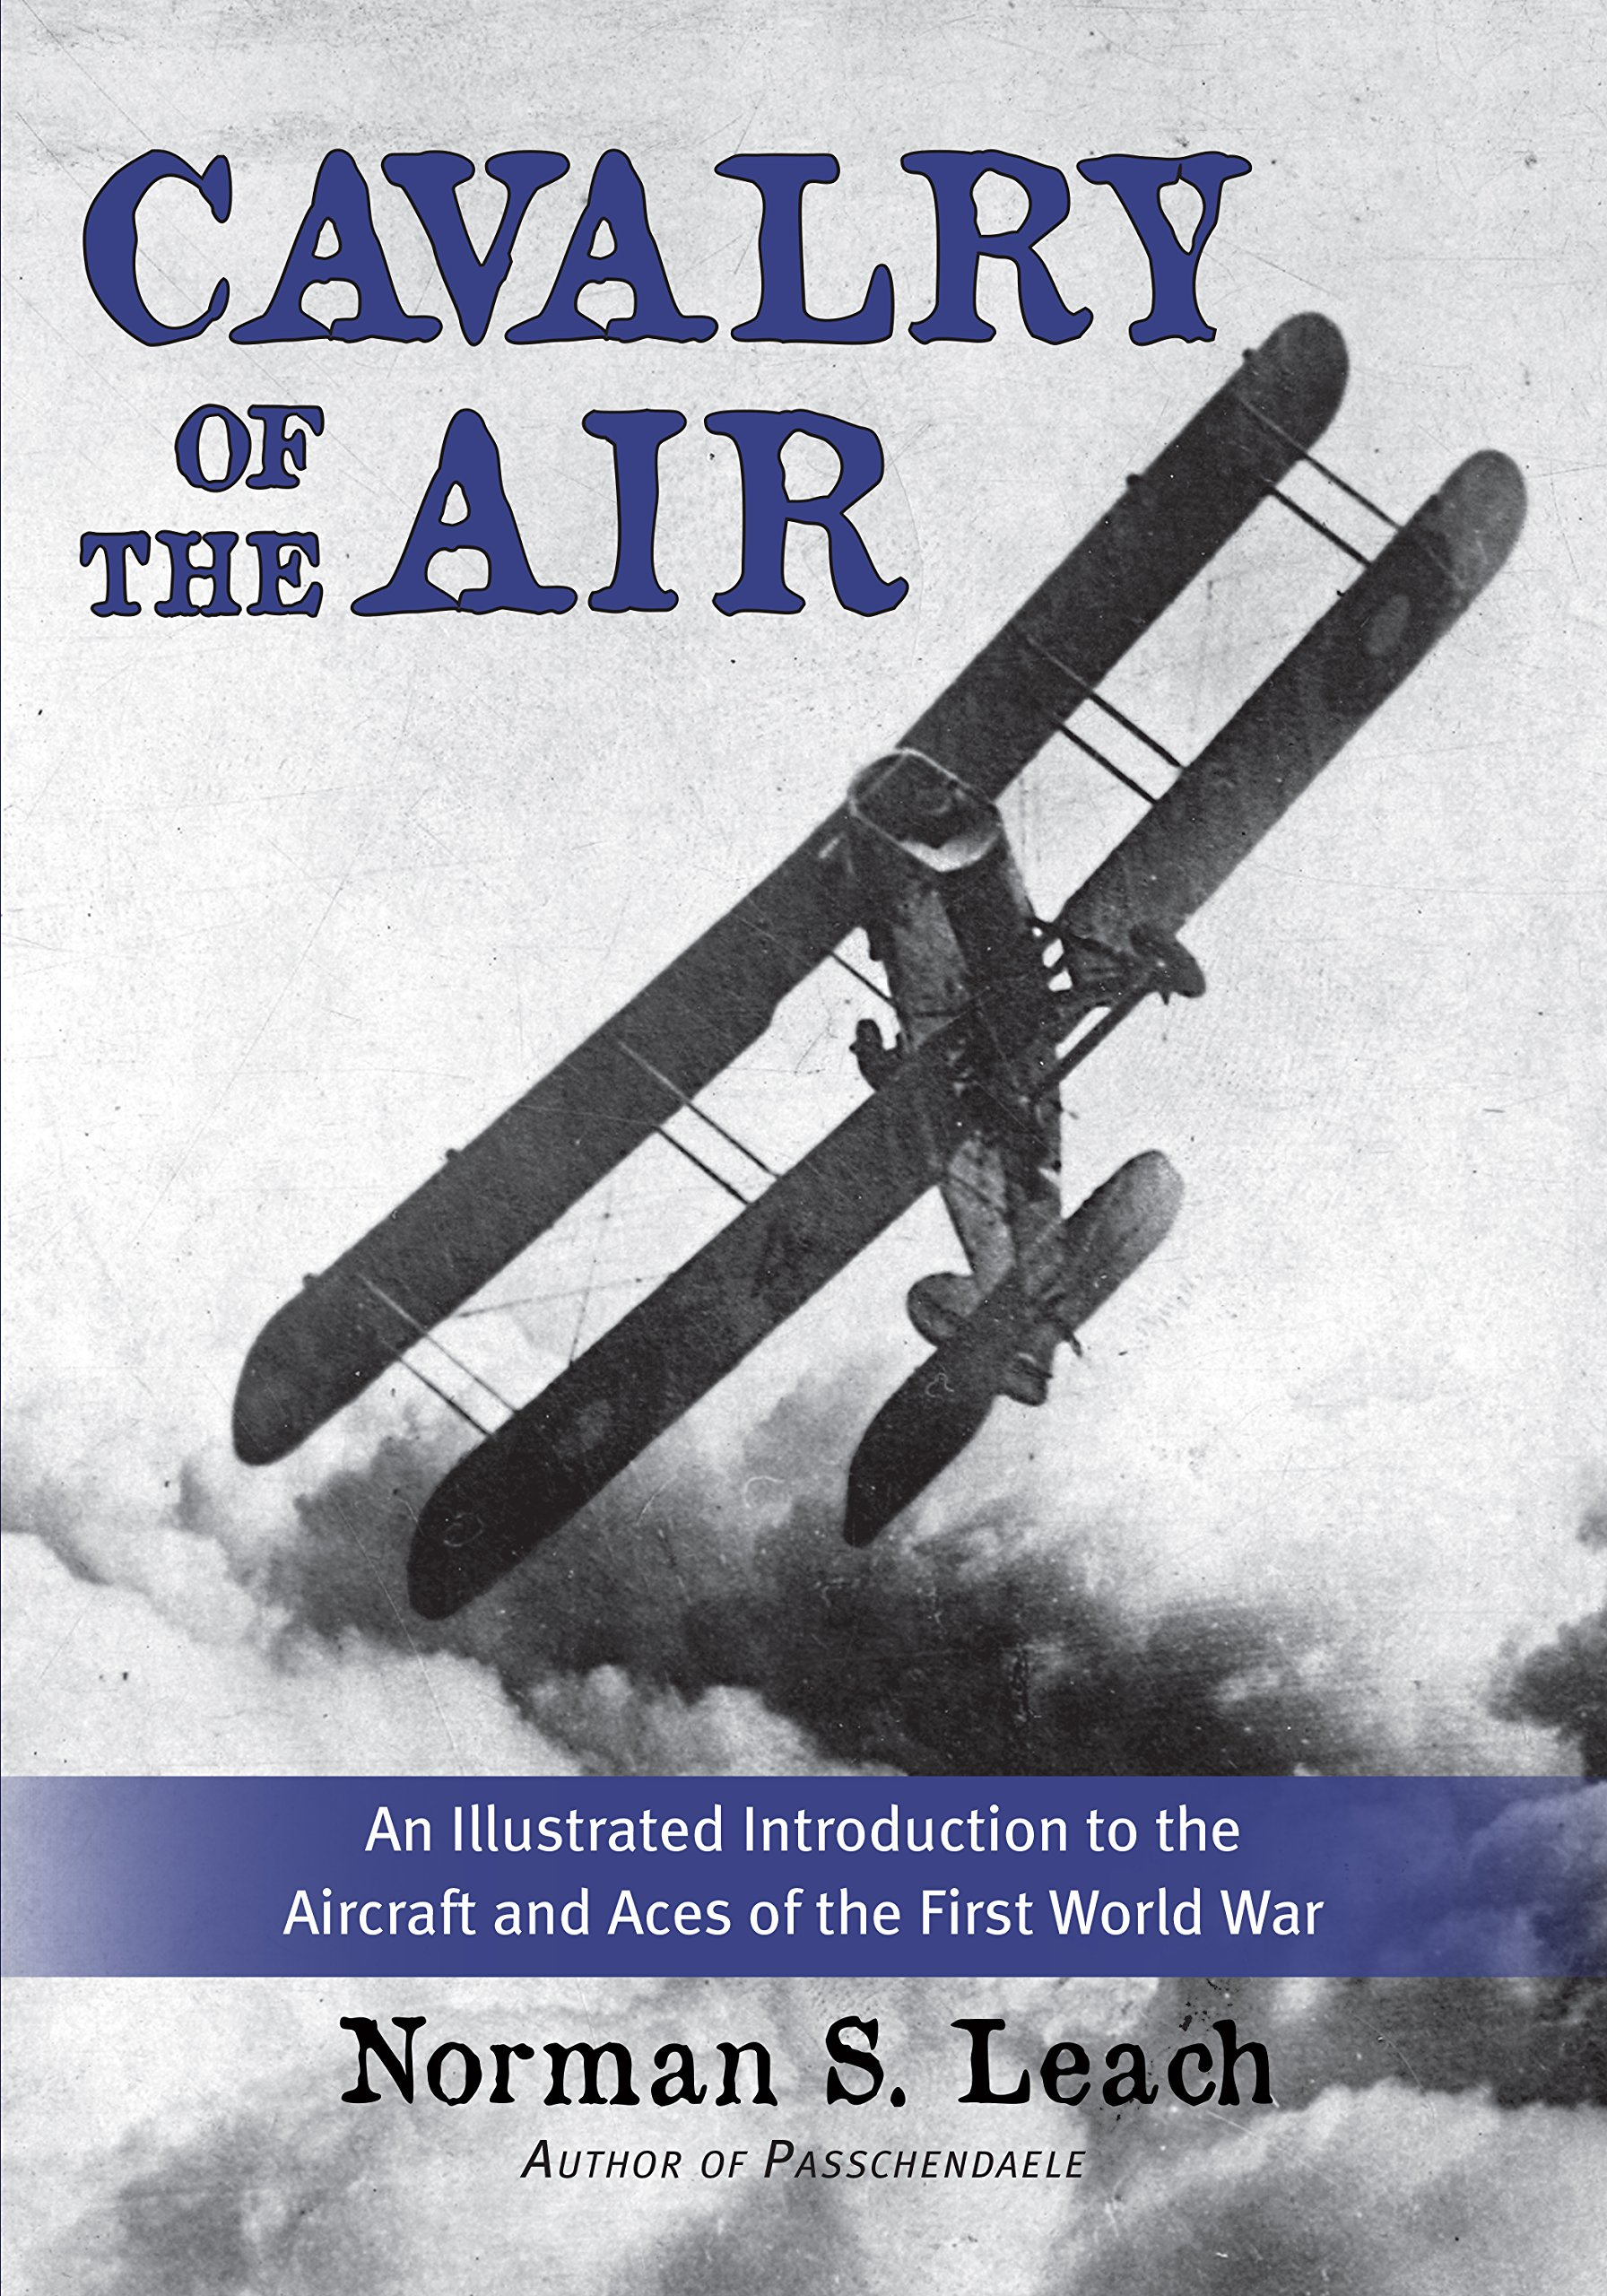 Read Online Cavalry of the Air: An Illustrated Introduction to the Aircraft and Aces of the First World War PDF